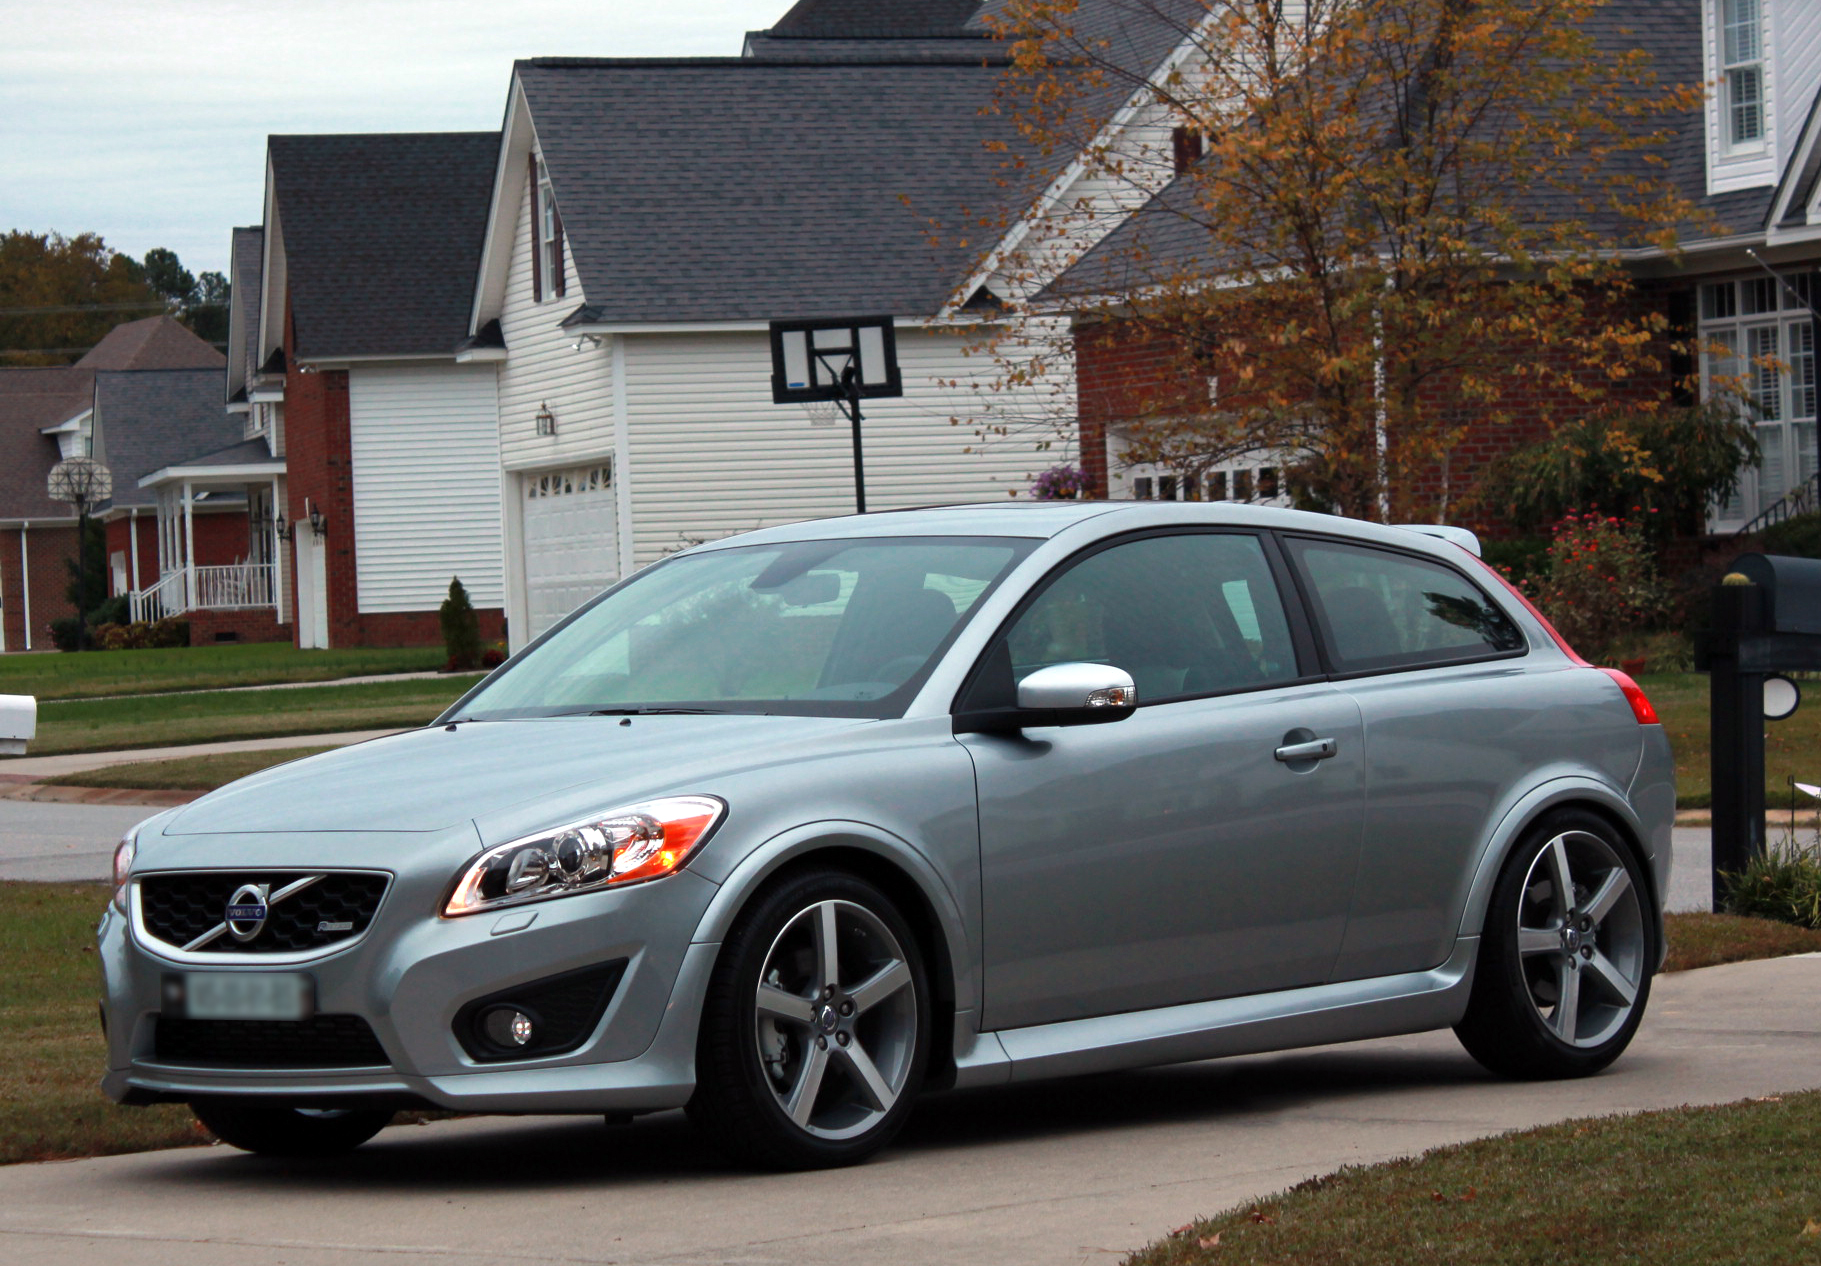 The best and worst states to insure a used Volvo C30